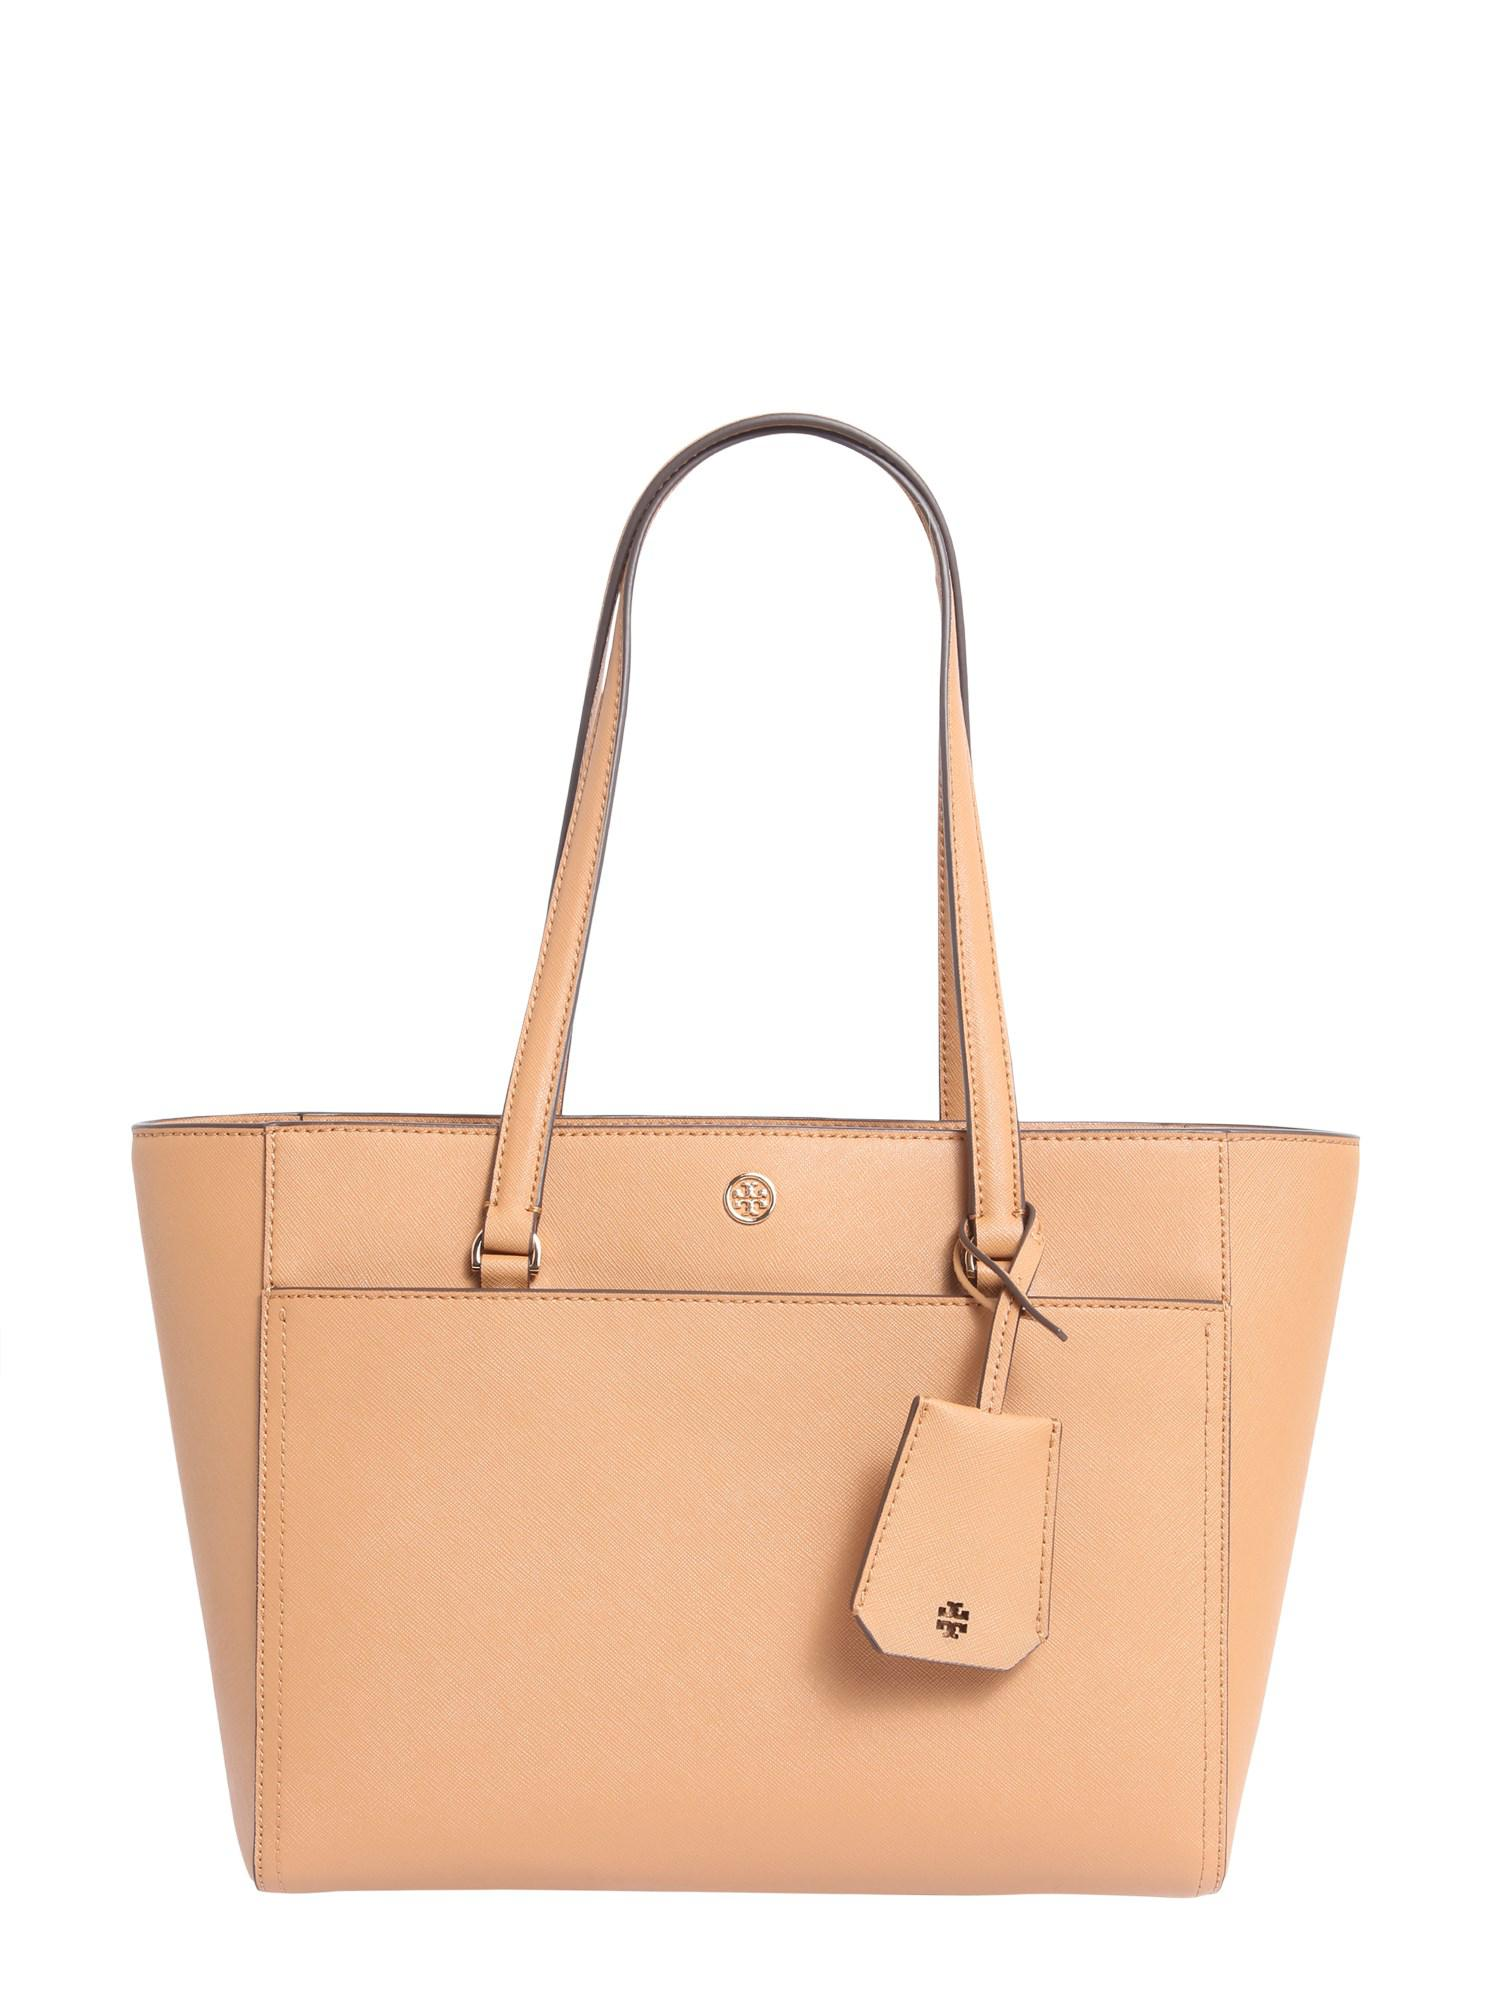 34233d1a732d Tory Burch. Women s Small Robinson Saffiano Leather Tote Bag